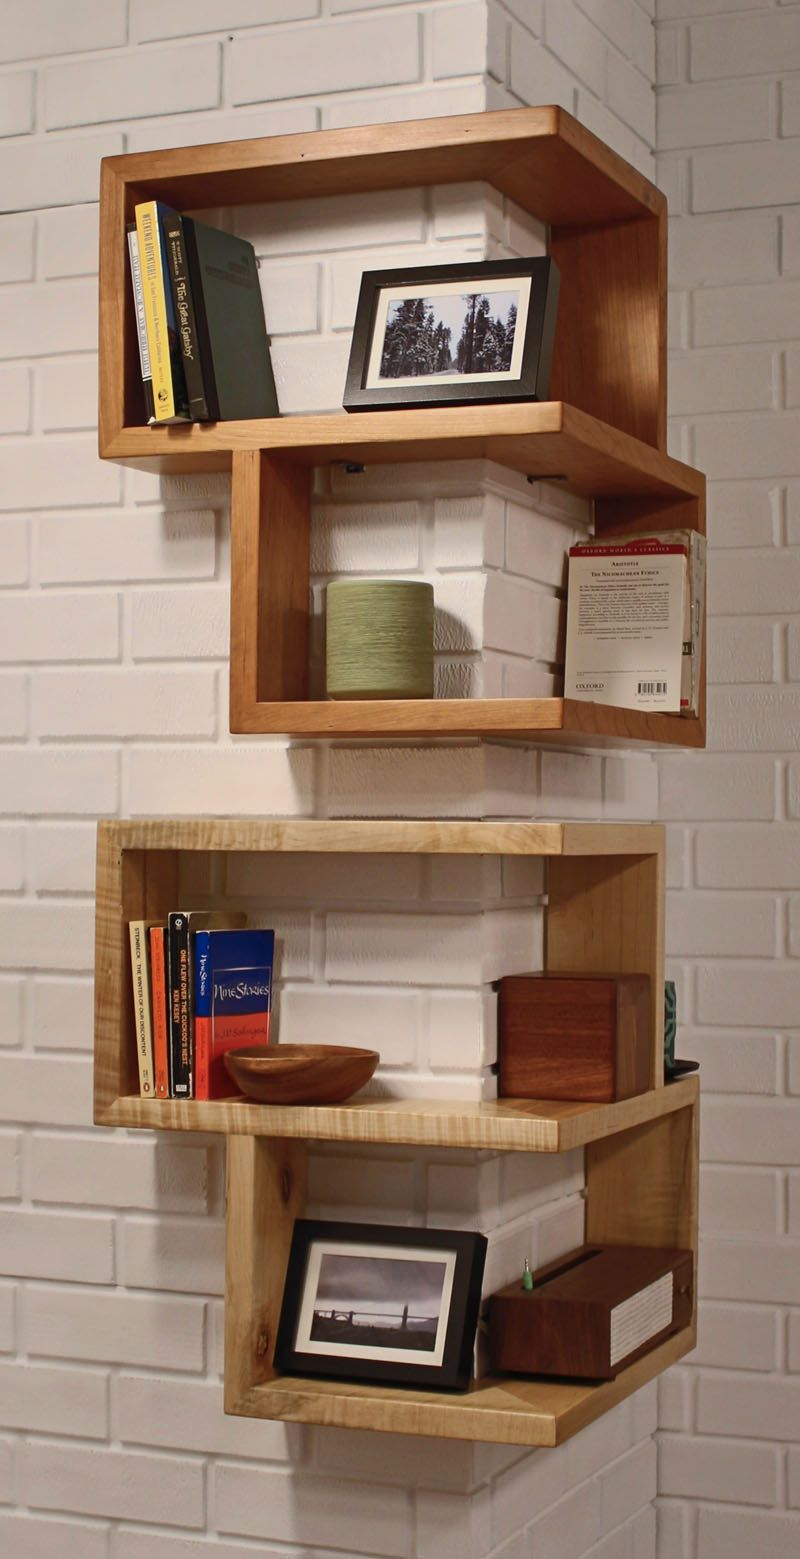 These box shelves hug the corners of your walls and make awkward